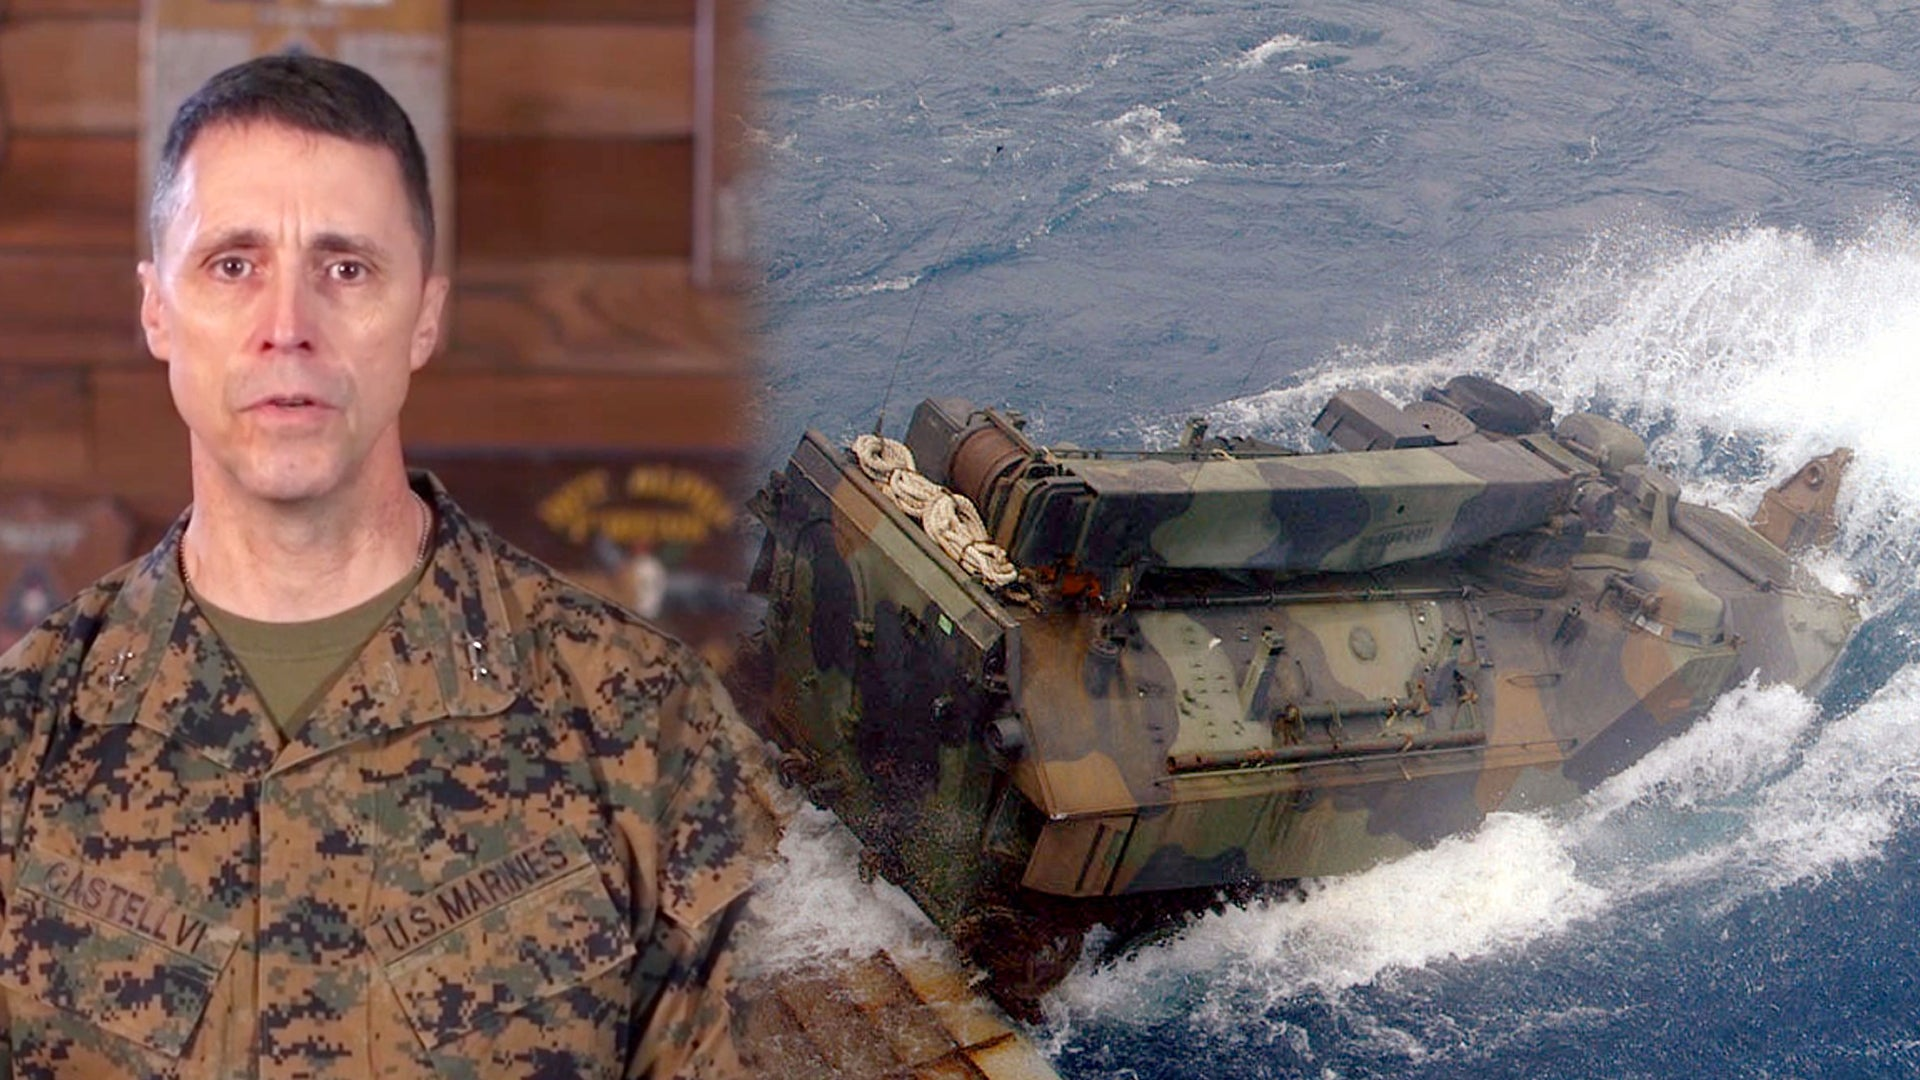 Marine Corps Inspector General suspended over role in amphibious vehicle disaster that killed 9